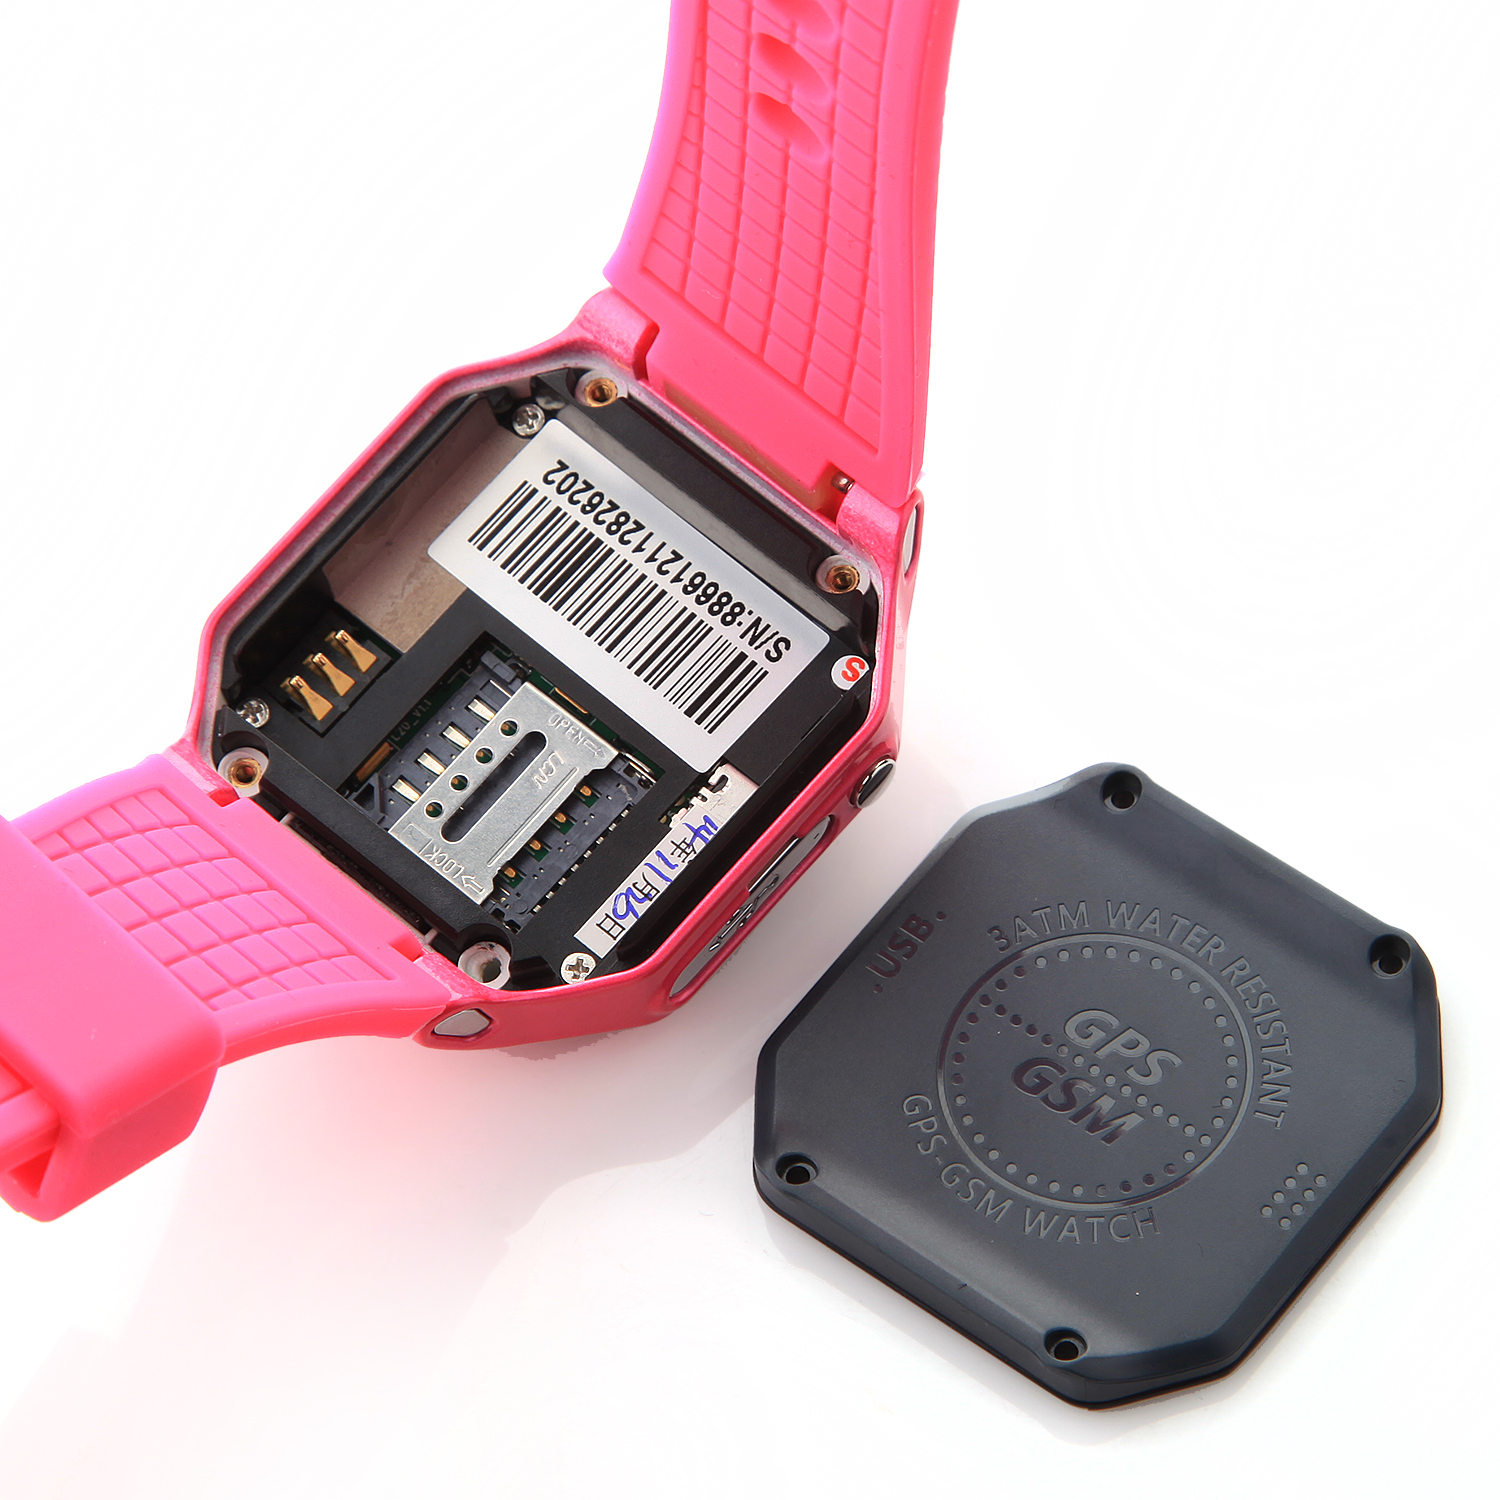 Kimiwatch L20 Children's Watch Phone Waterproof Positioning Monitoring USB SOS Button